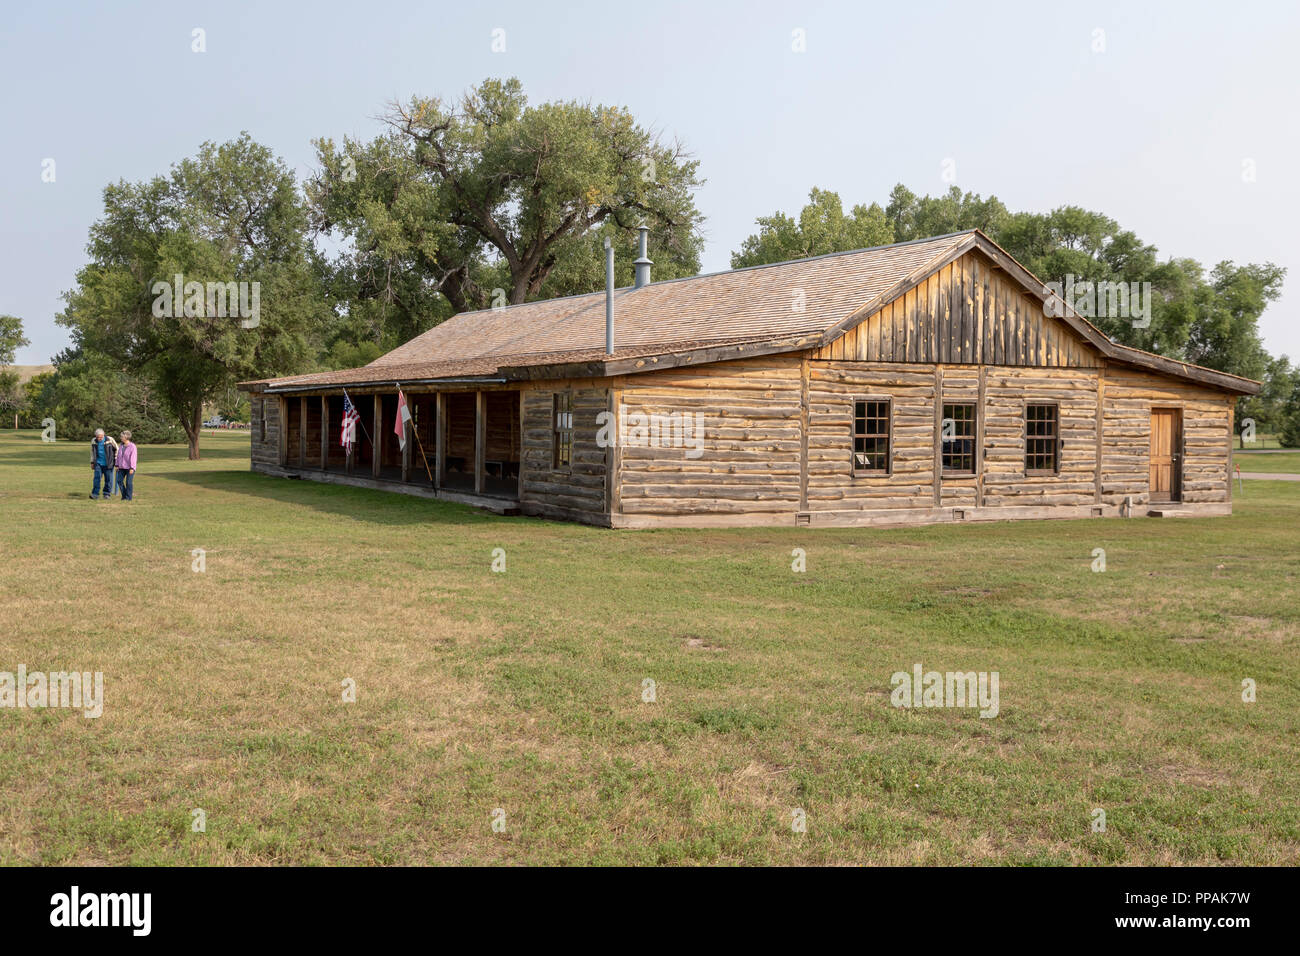 Crawford, Nebraska - The site of the original cavalry barracks at Fort Robinson State Park. (The existing building is a reproduction.) Fort Robinson i - Stock Image